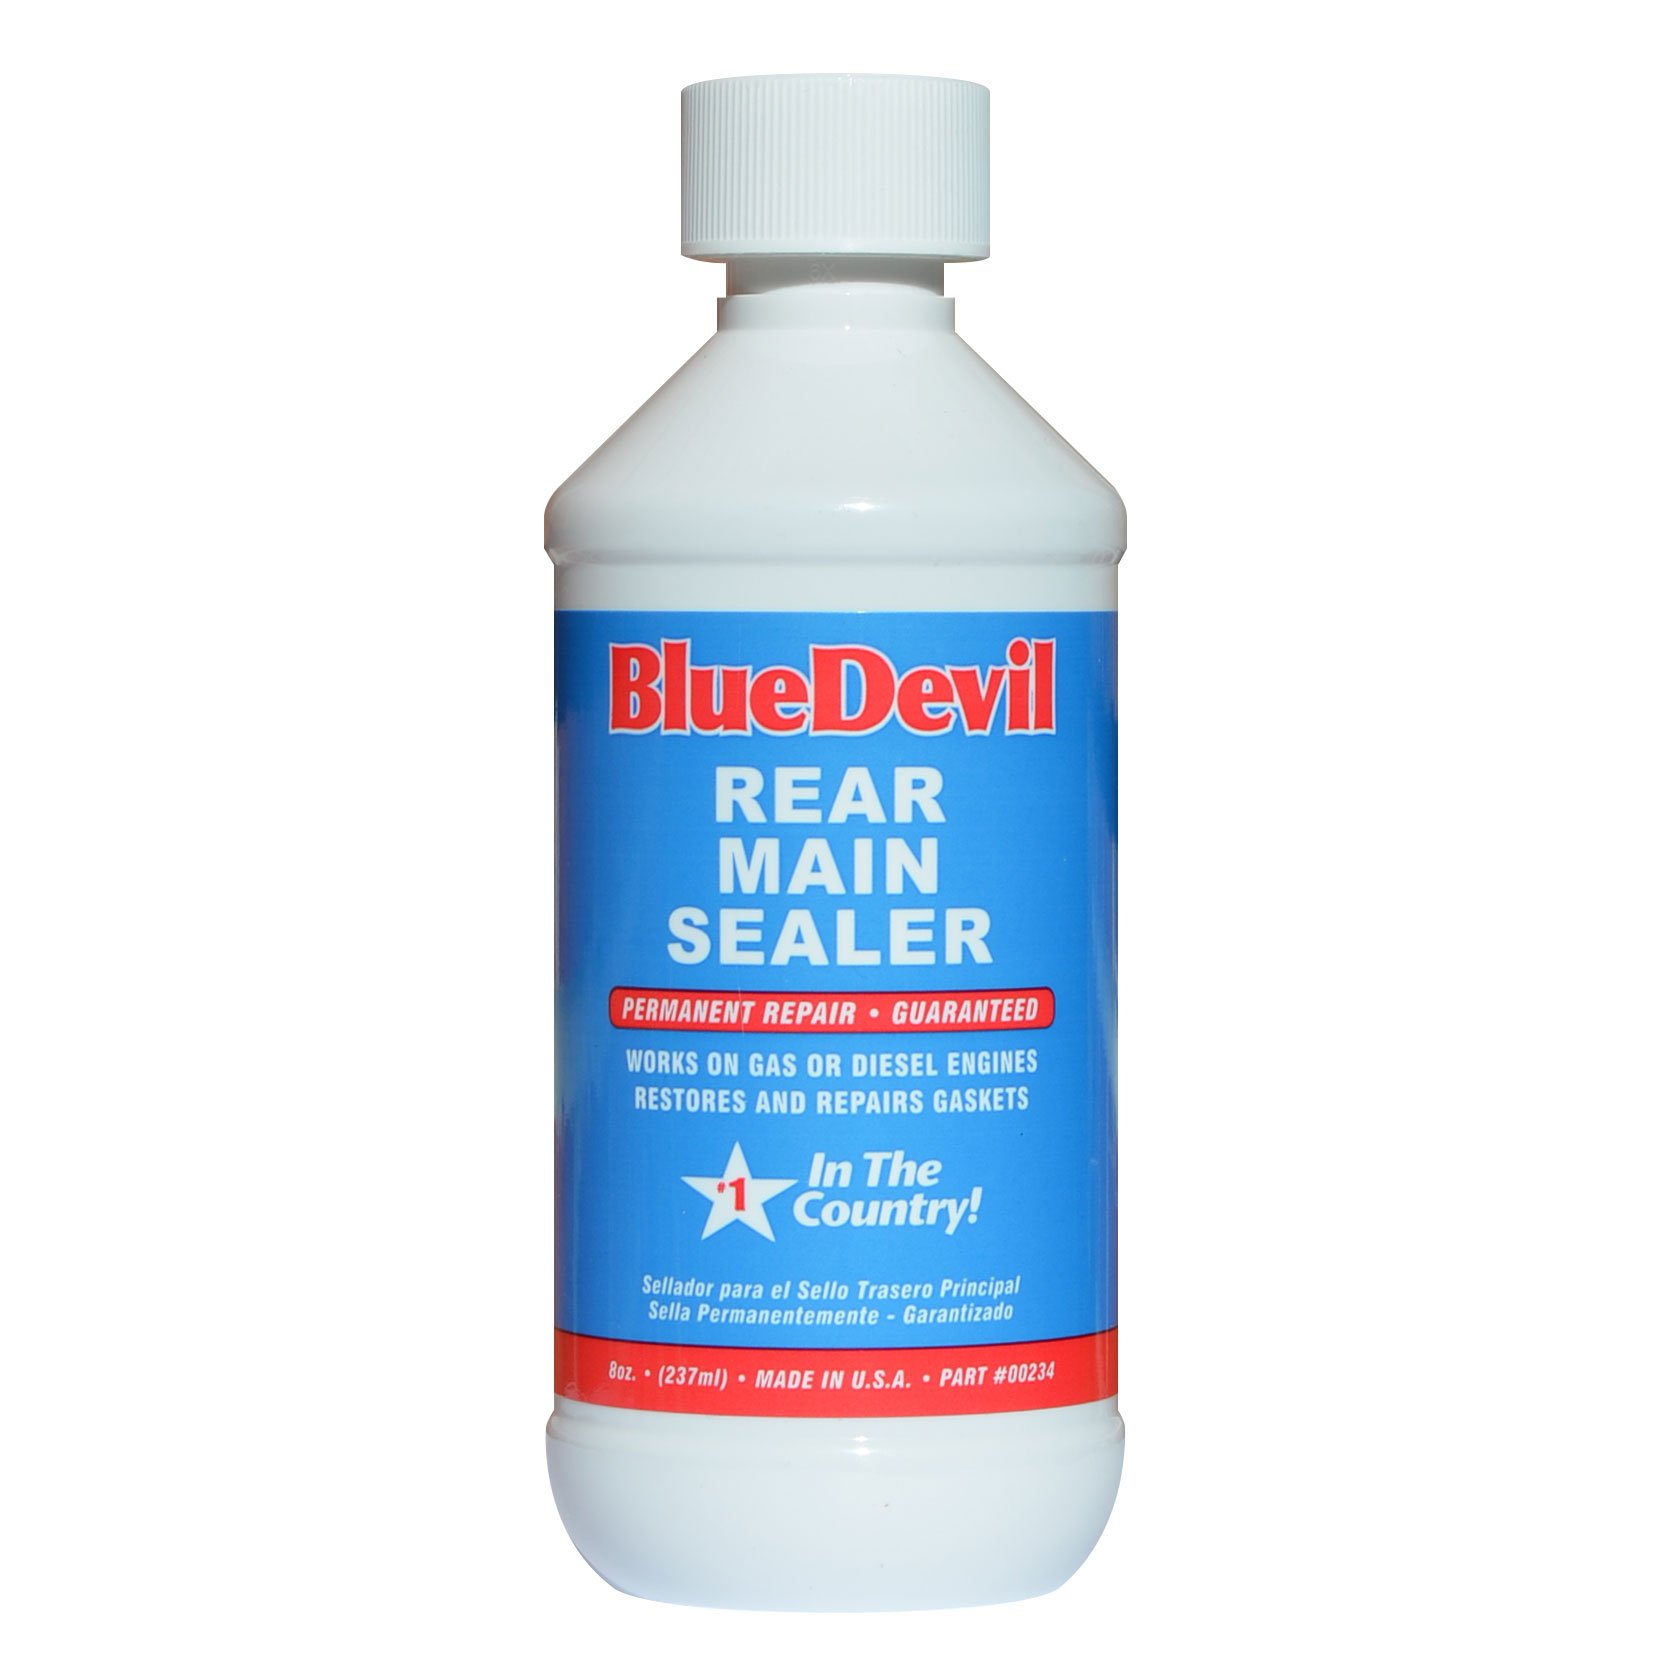 Blue Devil Rear Main Sealer - 8 Ounce (00234) by BlueDevil Products